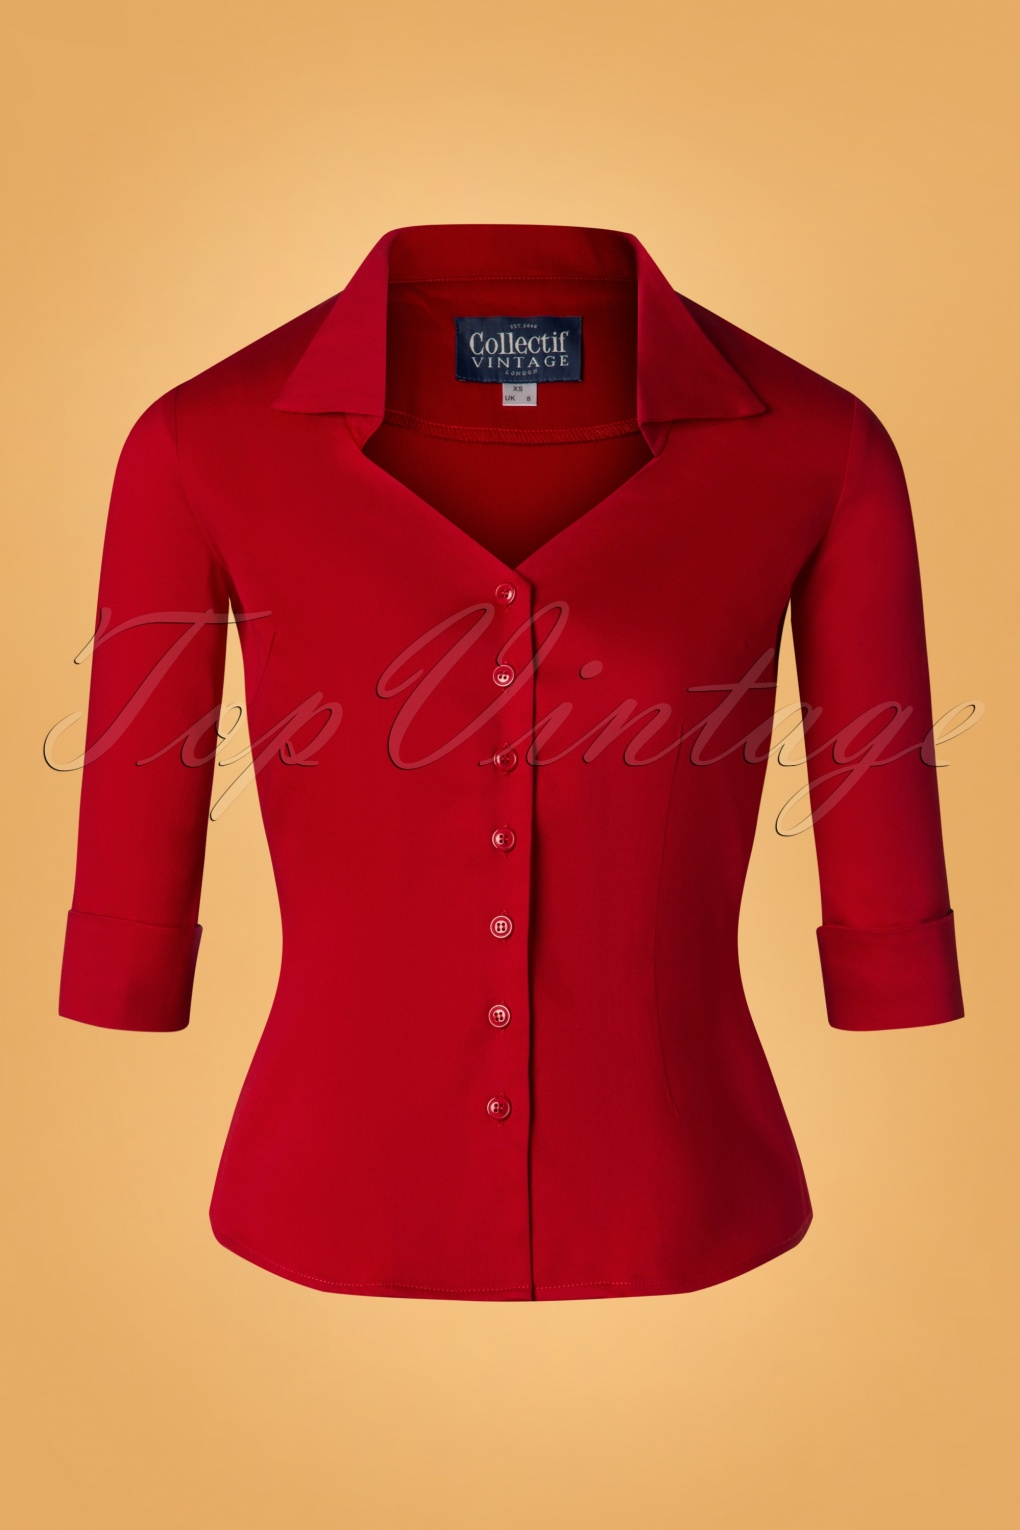 Vintage & Retro Shirts, Halter Tops, Blouses 50s Mona 34 Sleeve Blouse in Red £34.17 AT vintagedancer.com